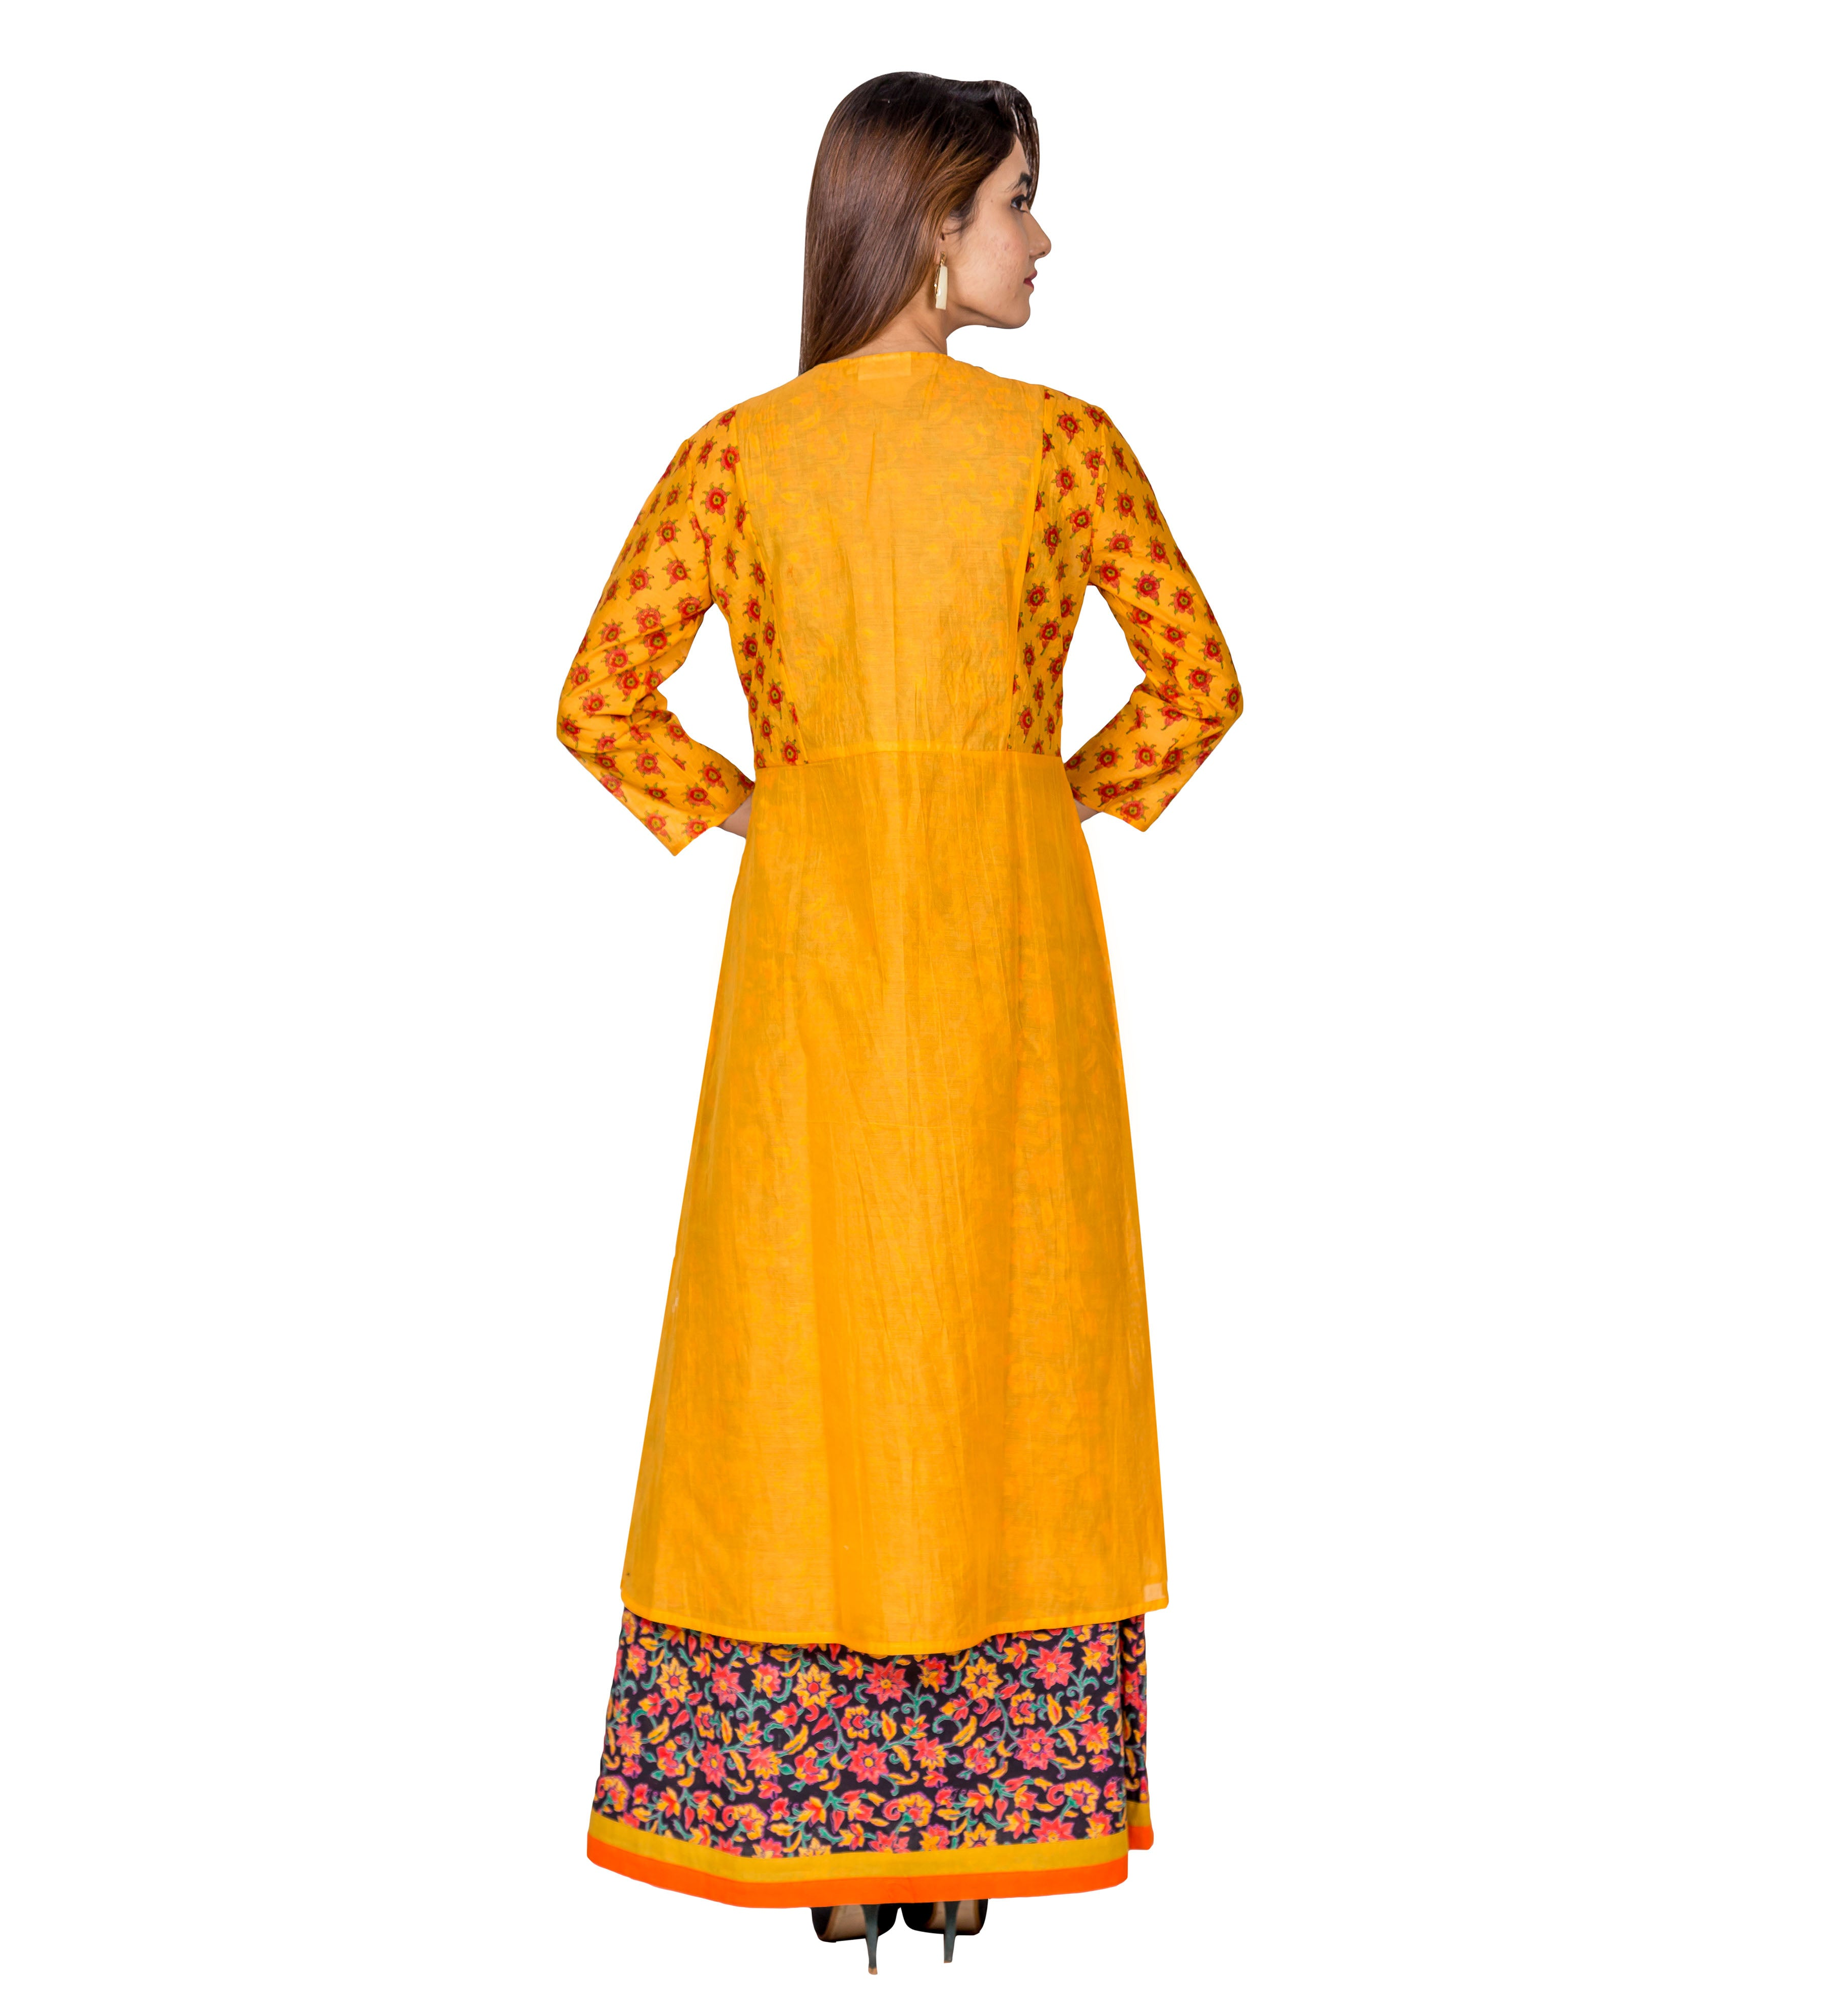 buy yellow dress